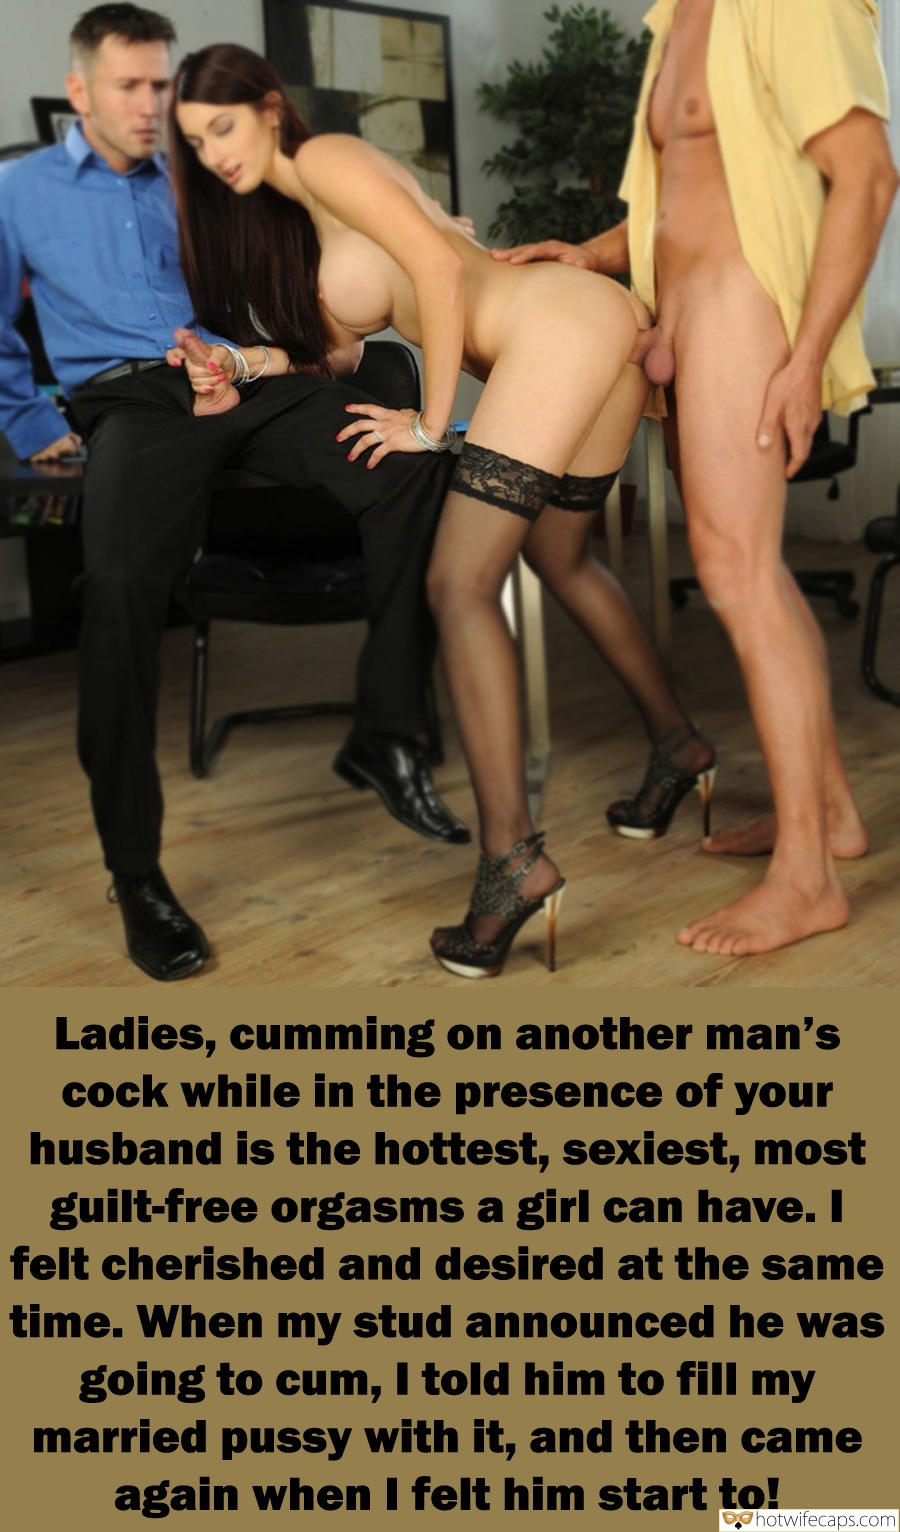 Wife Sharing Threesome  hotwife caption: 414 Ladies, cumming on another man's cock while in the presence of your husband is the hottest, sexiest, most guilt-free orgasms a girl can have. I felt cherished and desired at the same time. When my stud announced he was...